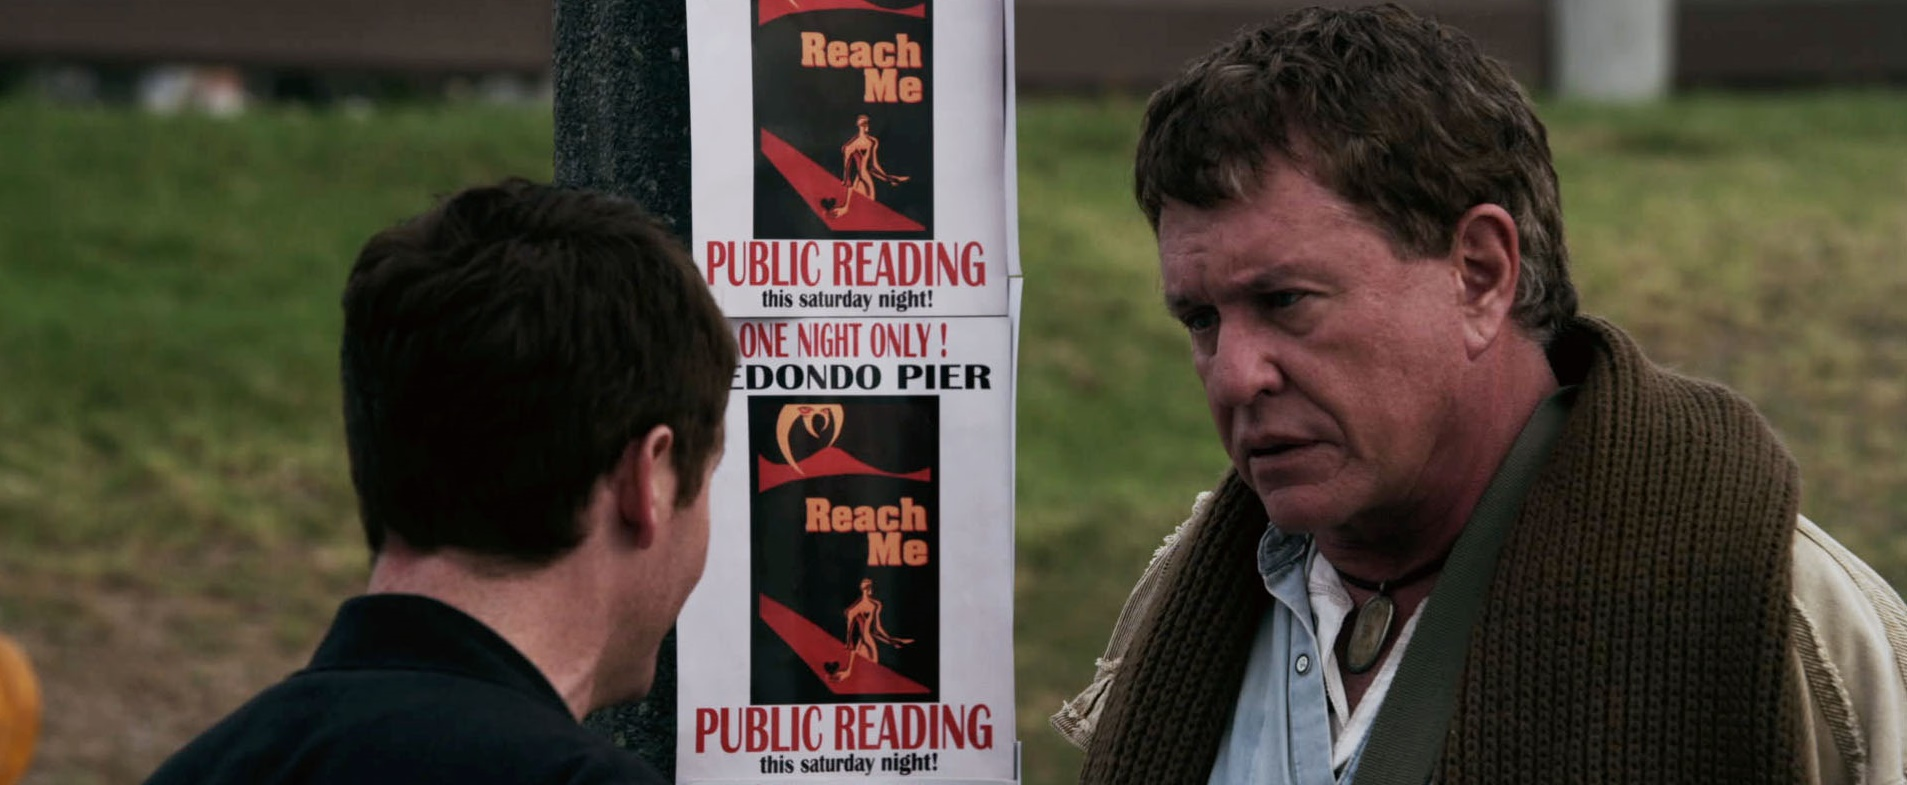 Kevin Connelly & Tom Berenger arrange one of those popular public readings of self-help books.